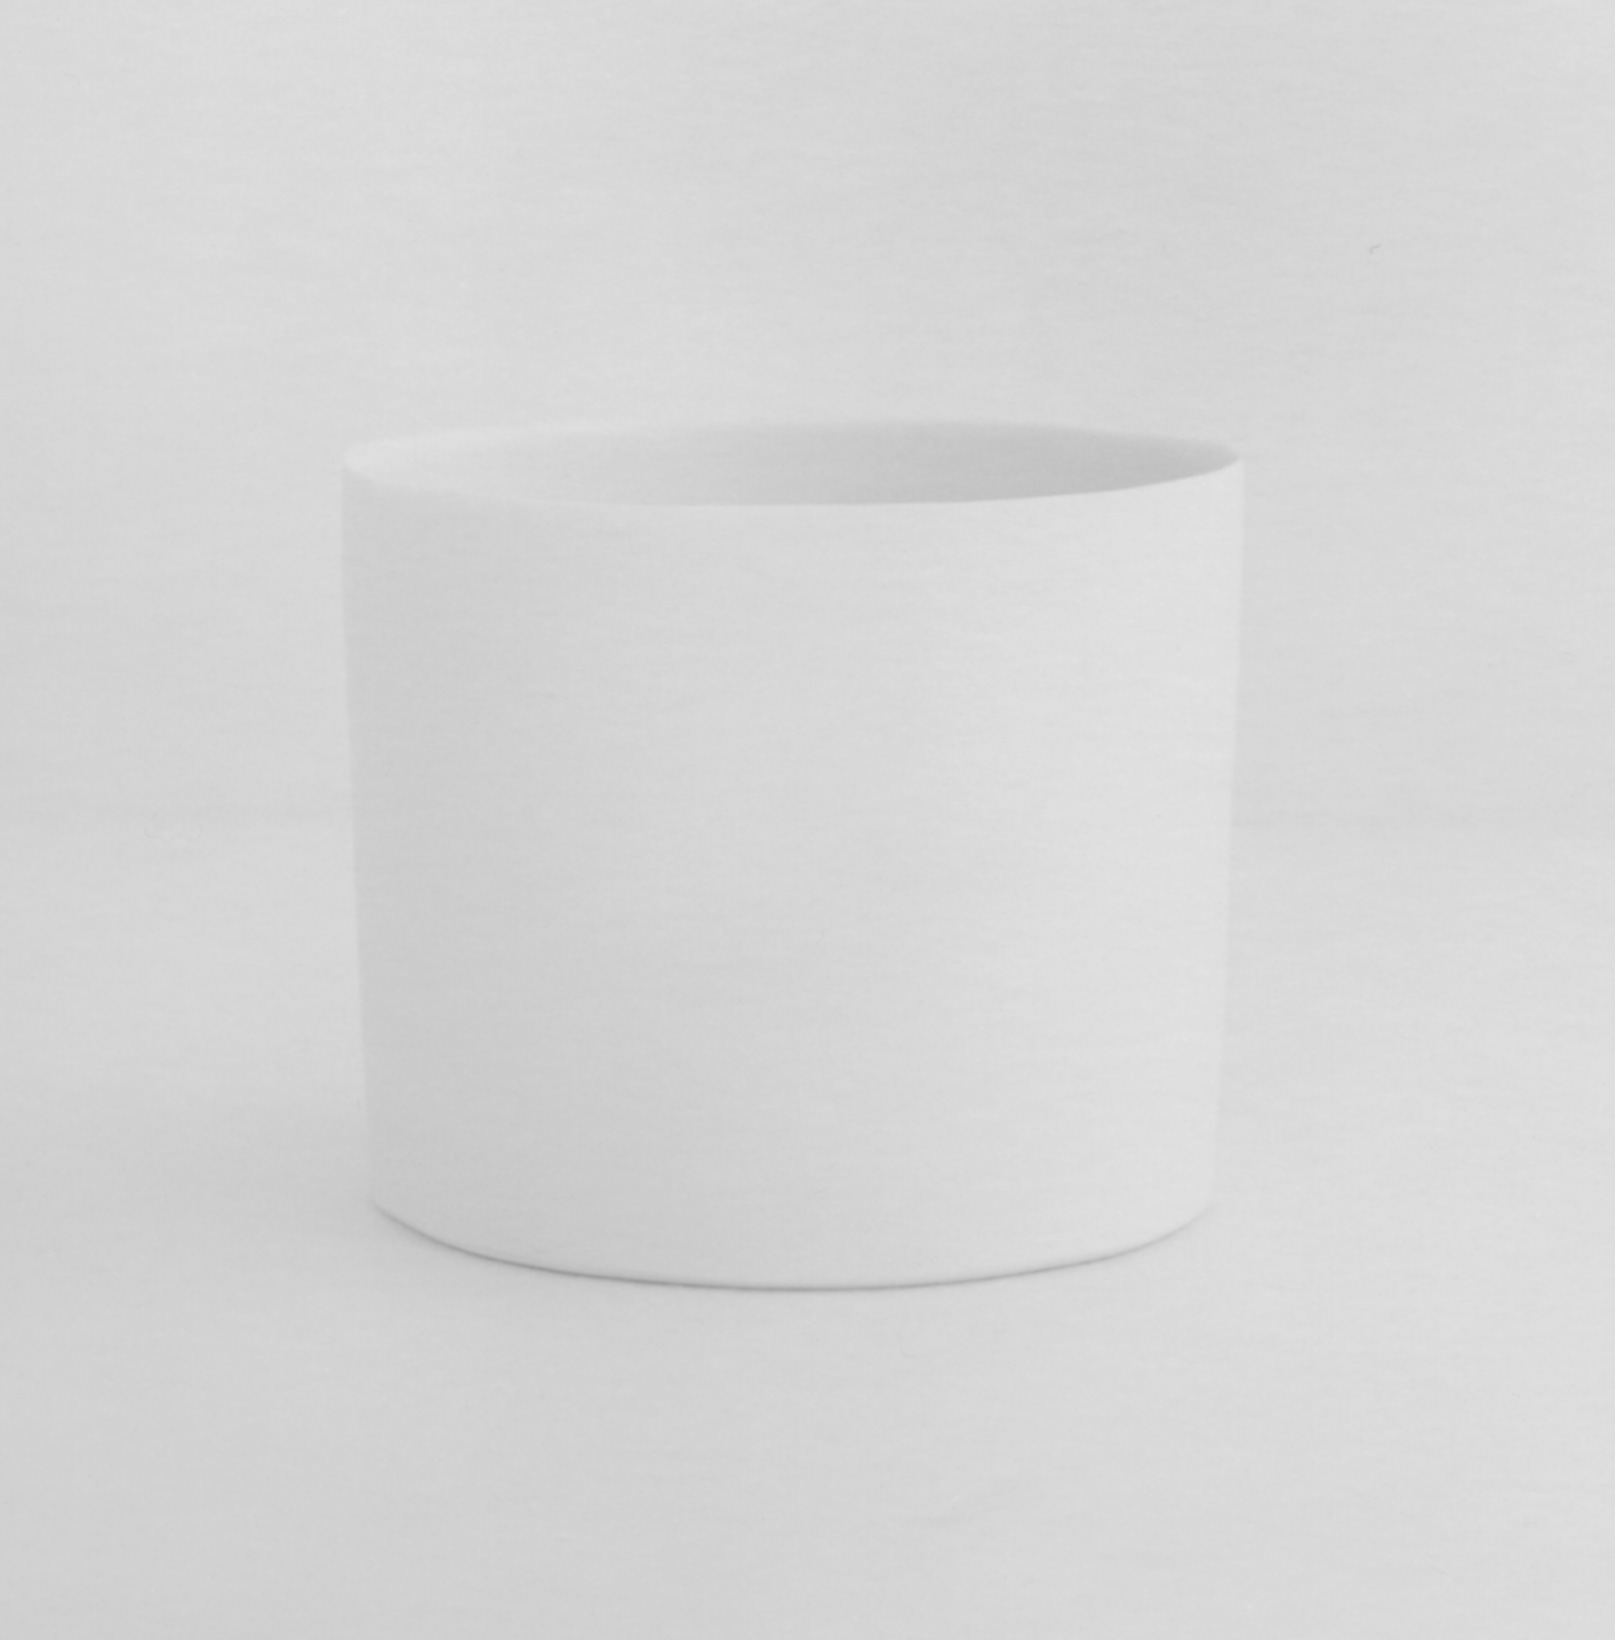 THE WHITE HEAT Cylinder No. 0 2015 Porcelain 3.75 x 3.5 inches / 9.6 x 8.8 cm 2017 Marc Straus Gallery